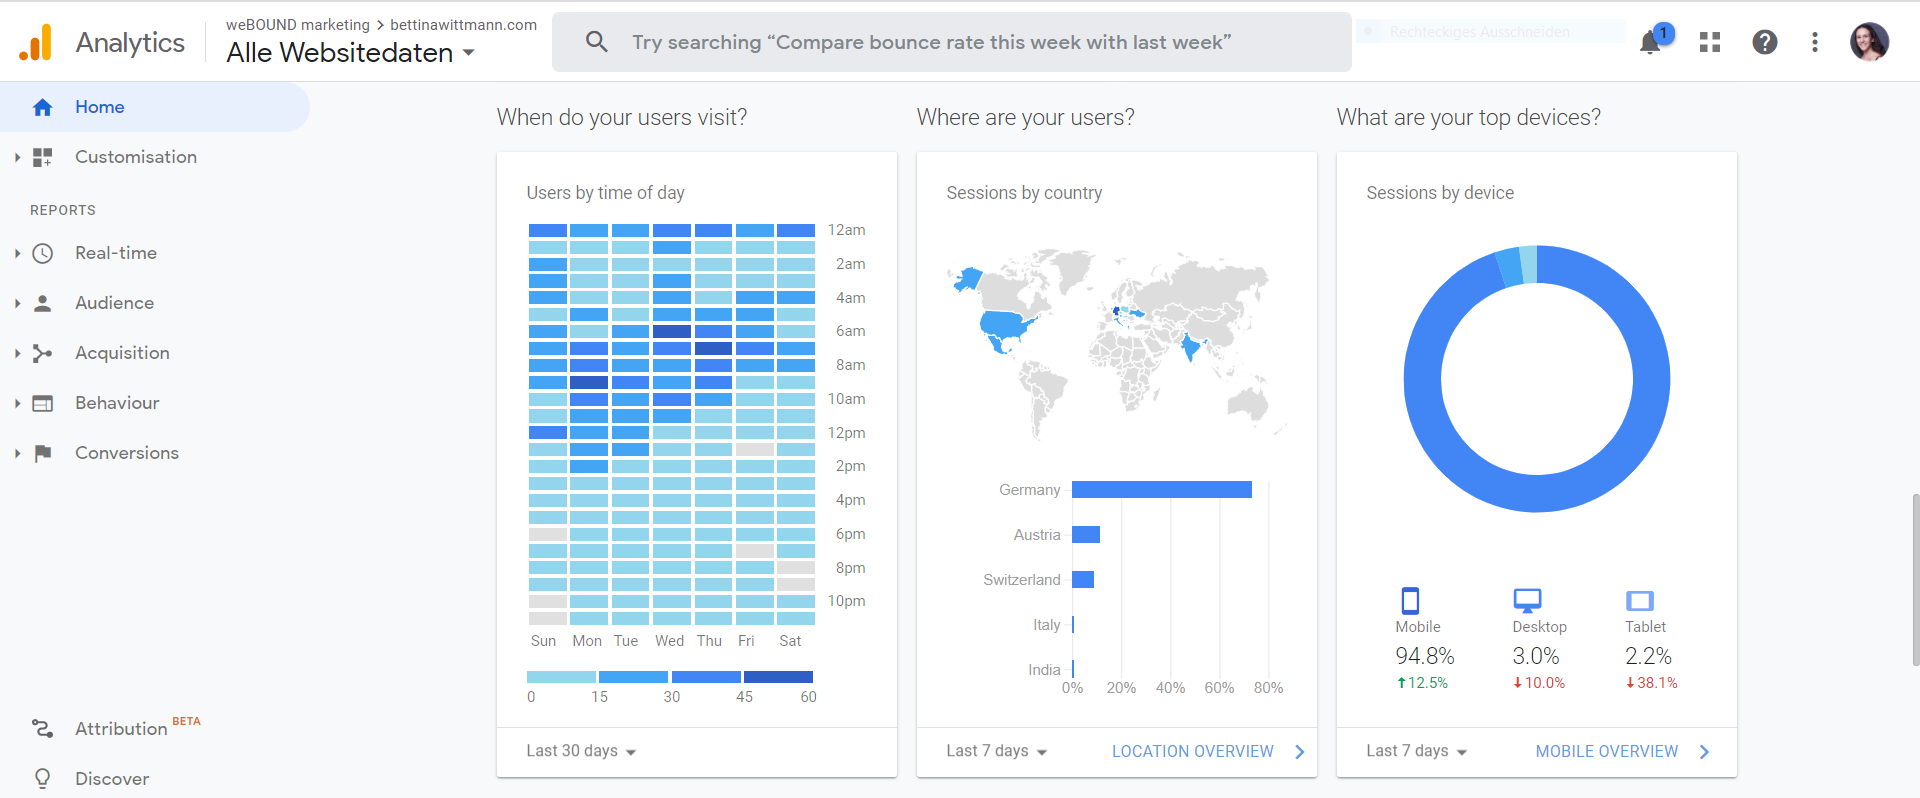 Google Analytics Overview of Website Tracking